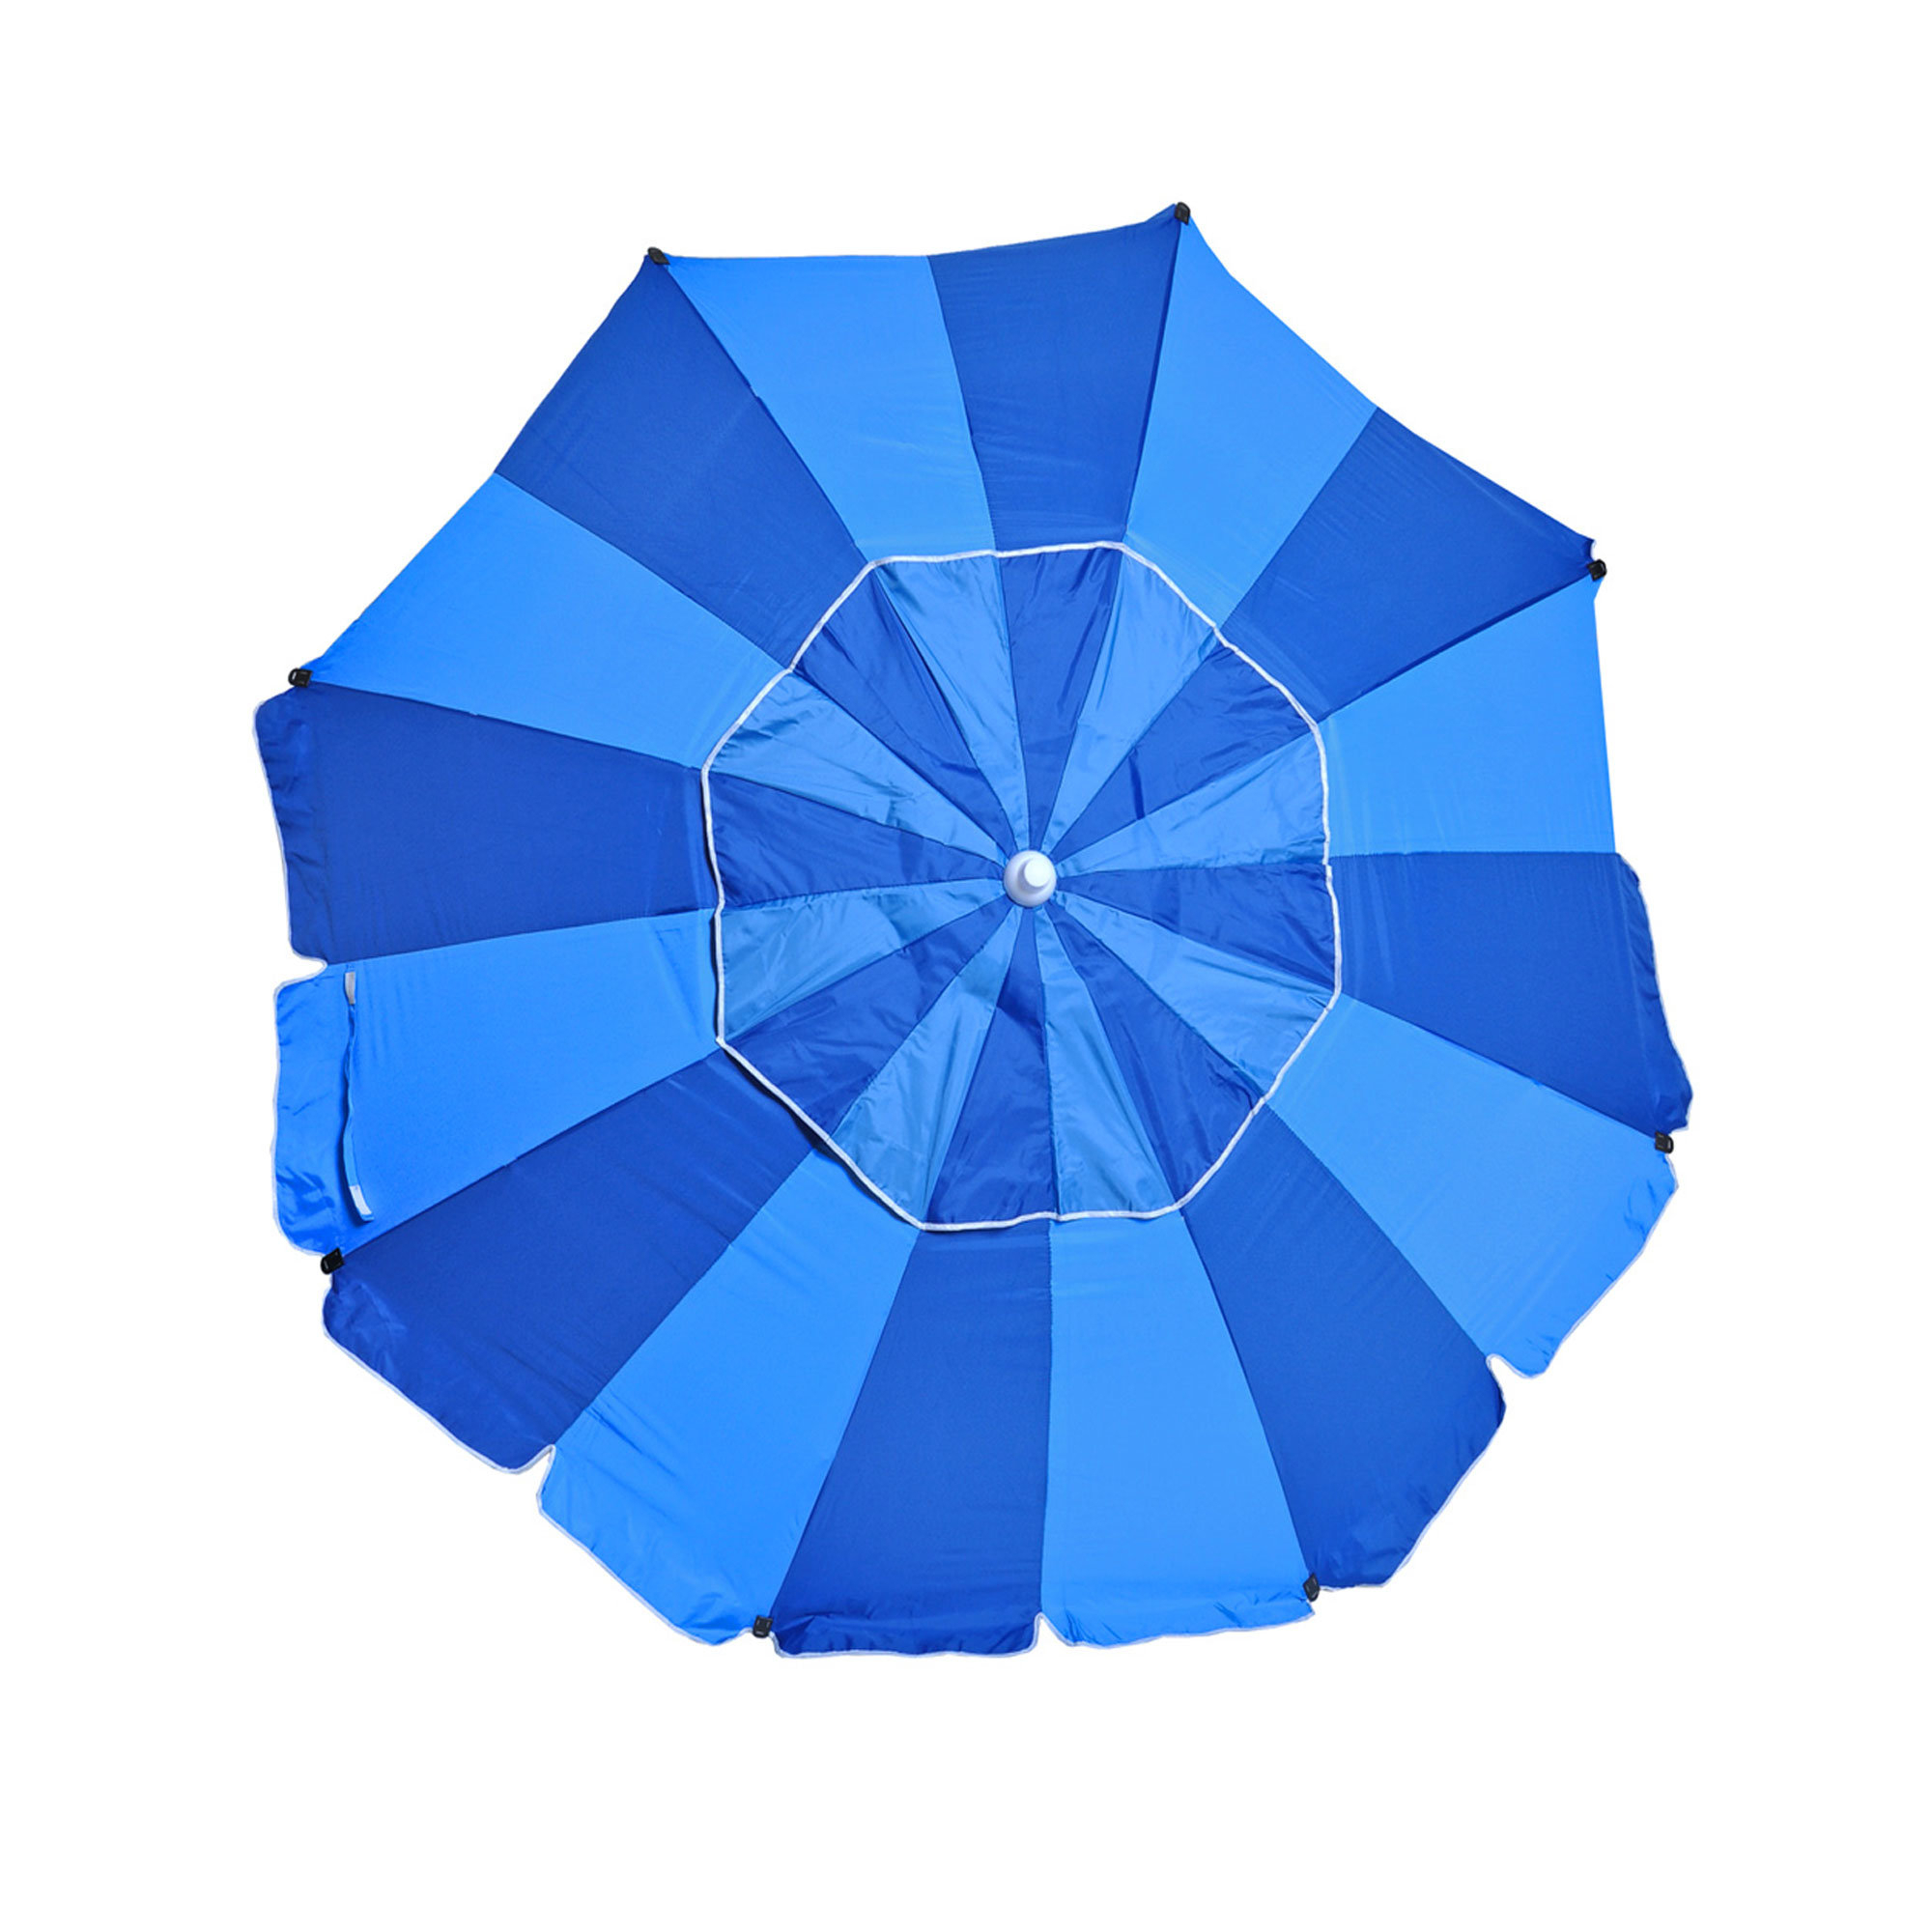 Schroeder Heavy Duty Beach Umbrellas With Regard To 2019 Schroeder Heavy Duty 8' Beach Umbrella (View 18 of 20)